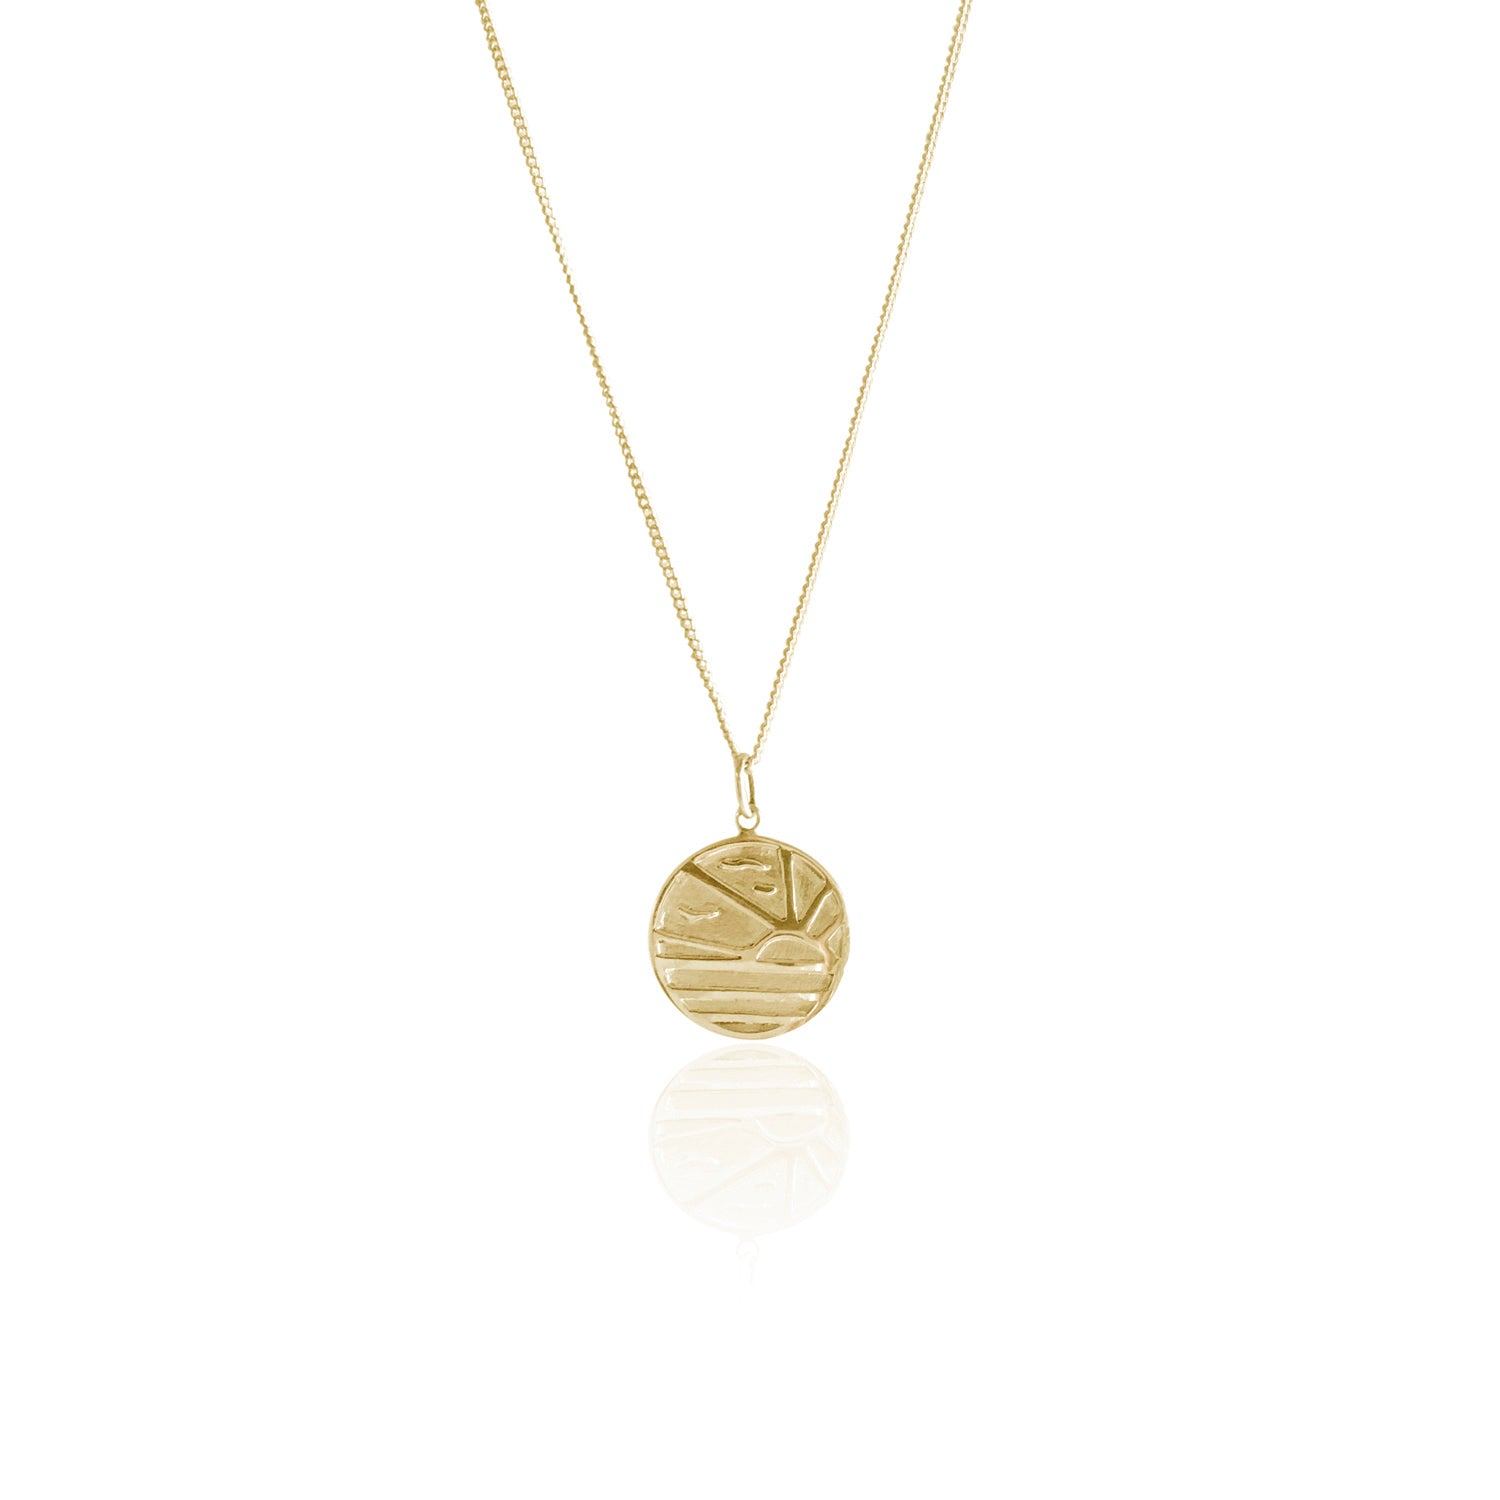 GOLDFISH KISS x LA LUNA ROSE SUNSET NECKLACE (Gold)